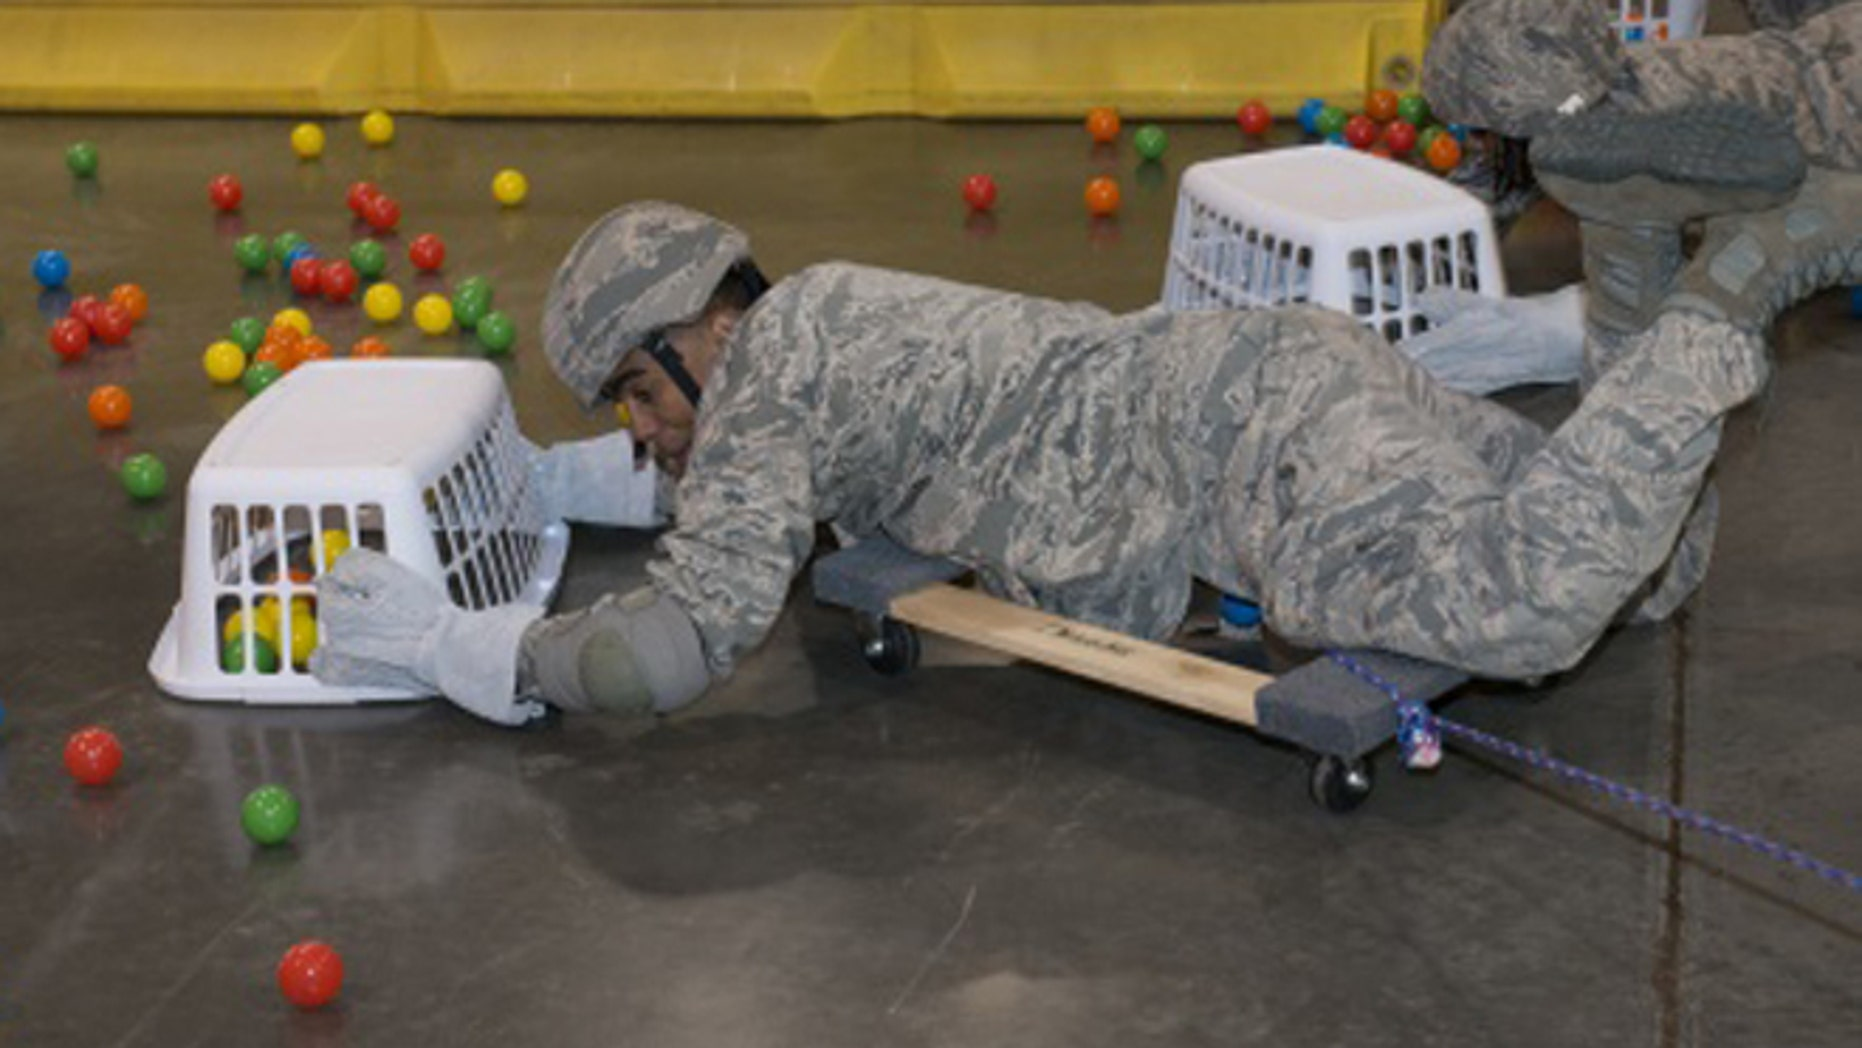 """Airmen played a child's game as part of a """"team-building"""" exercise. (Washington Free Beacon)"""